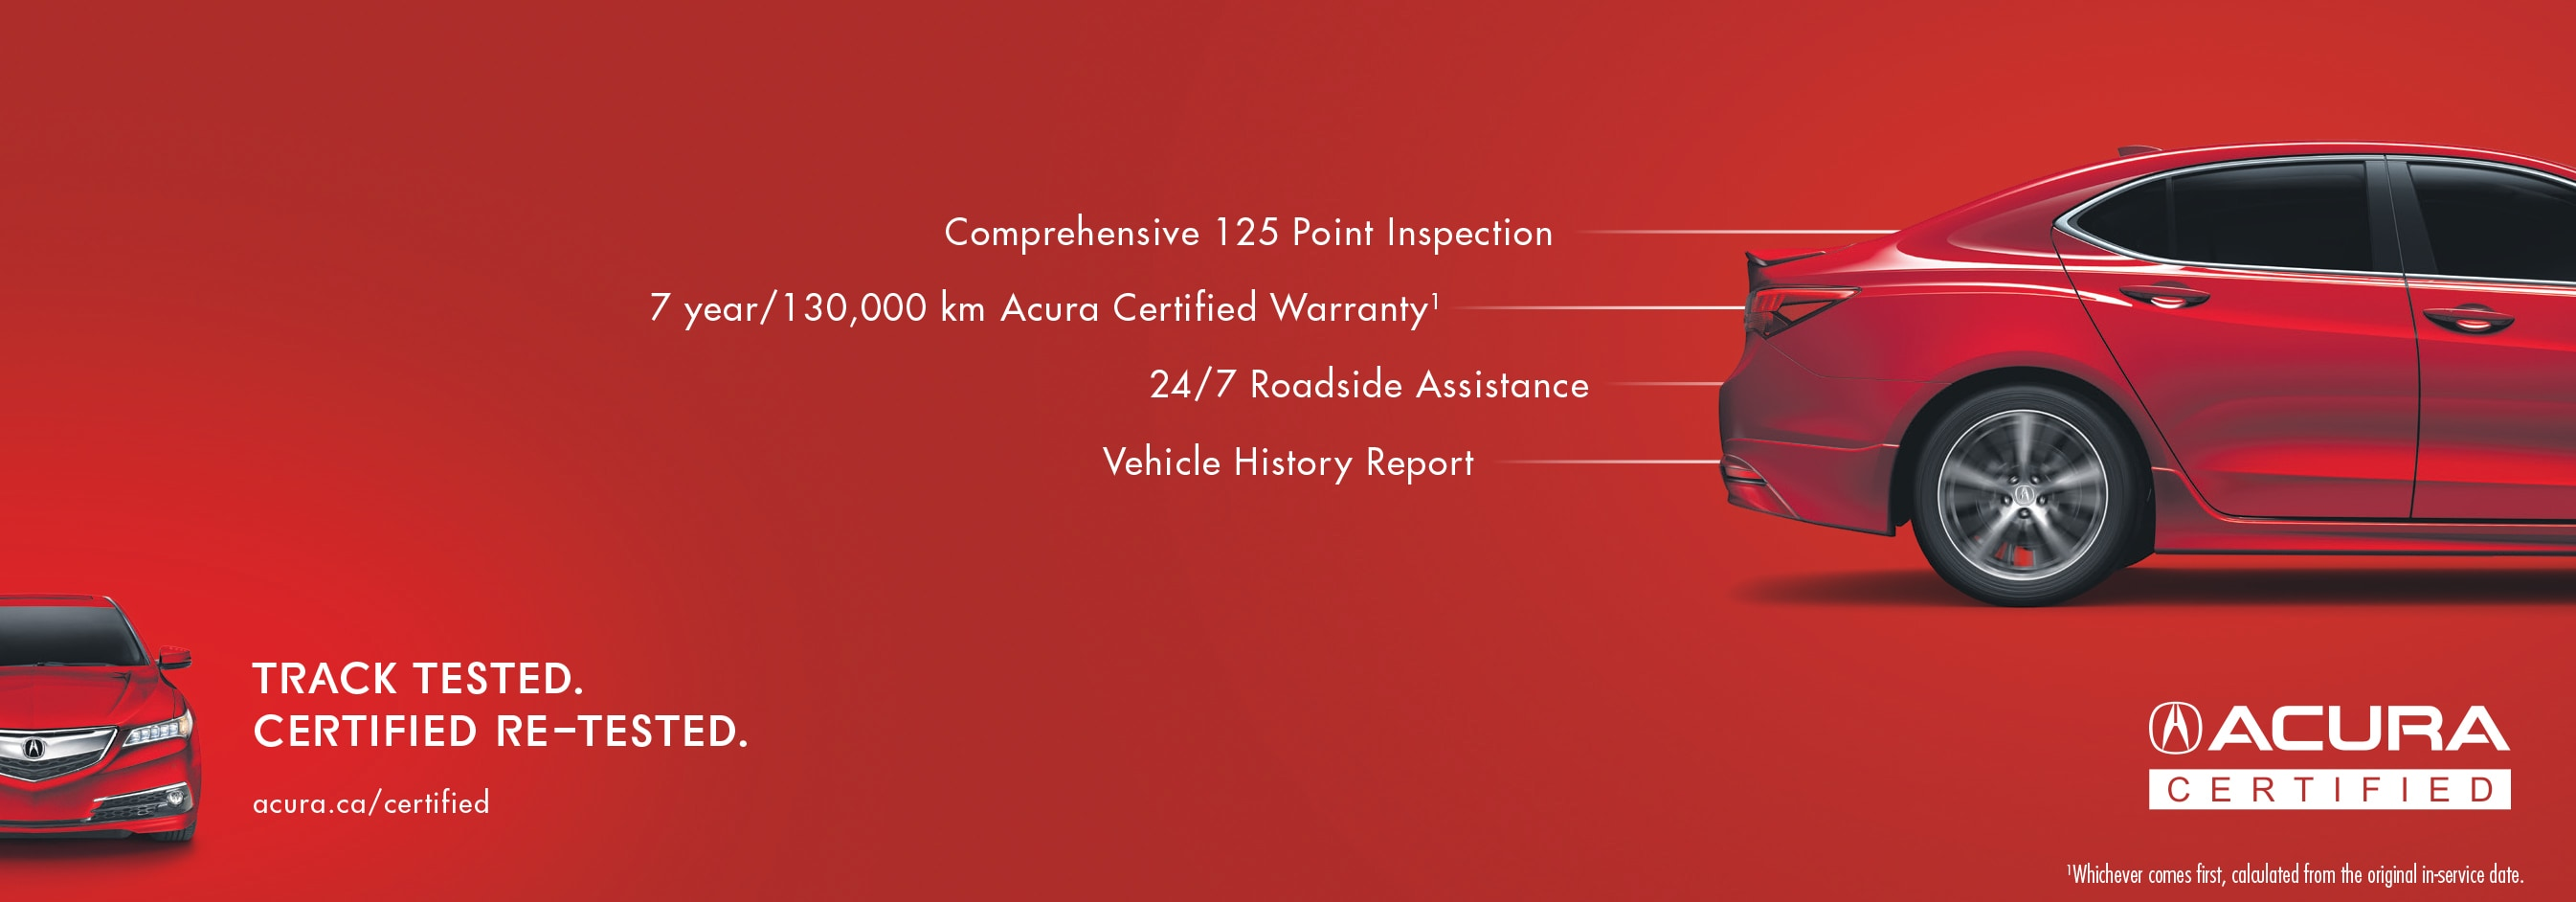 Acura Roadside Assistance >> Sterne Acura In Aurora New Vehicles And Used Cars For Sale